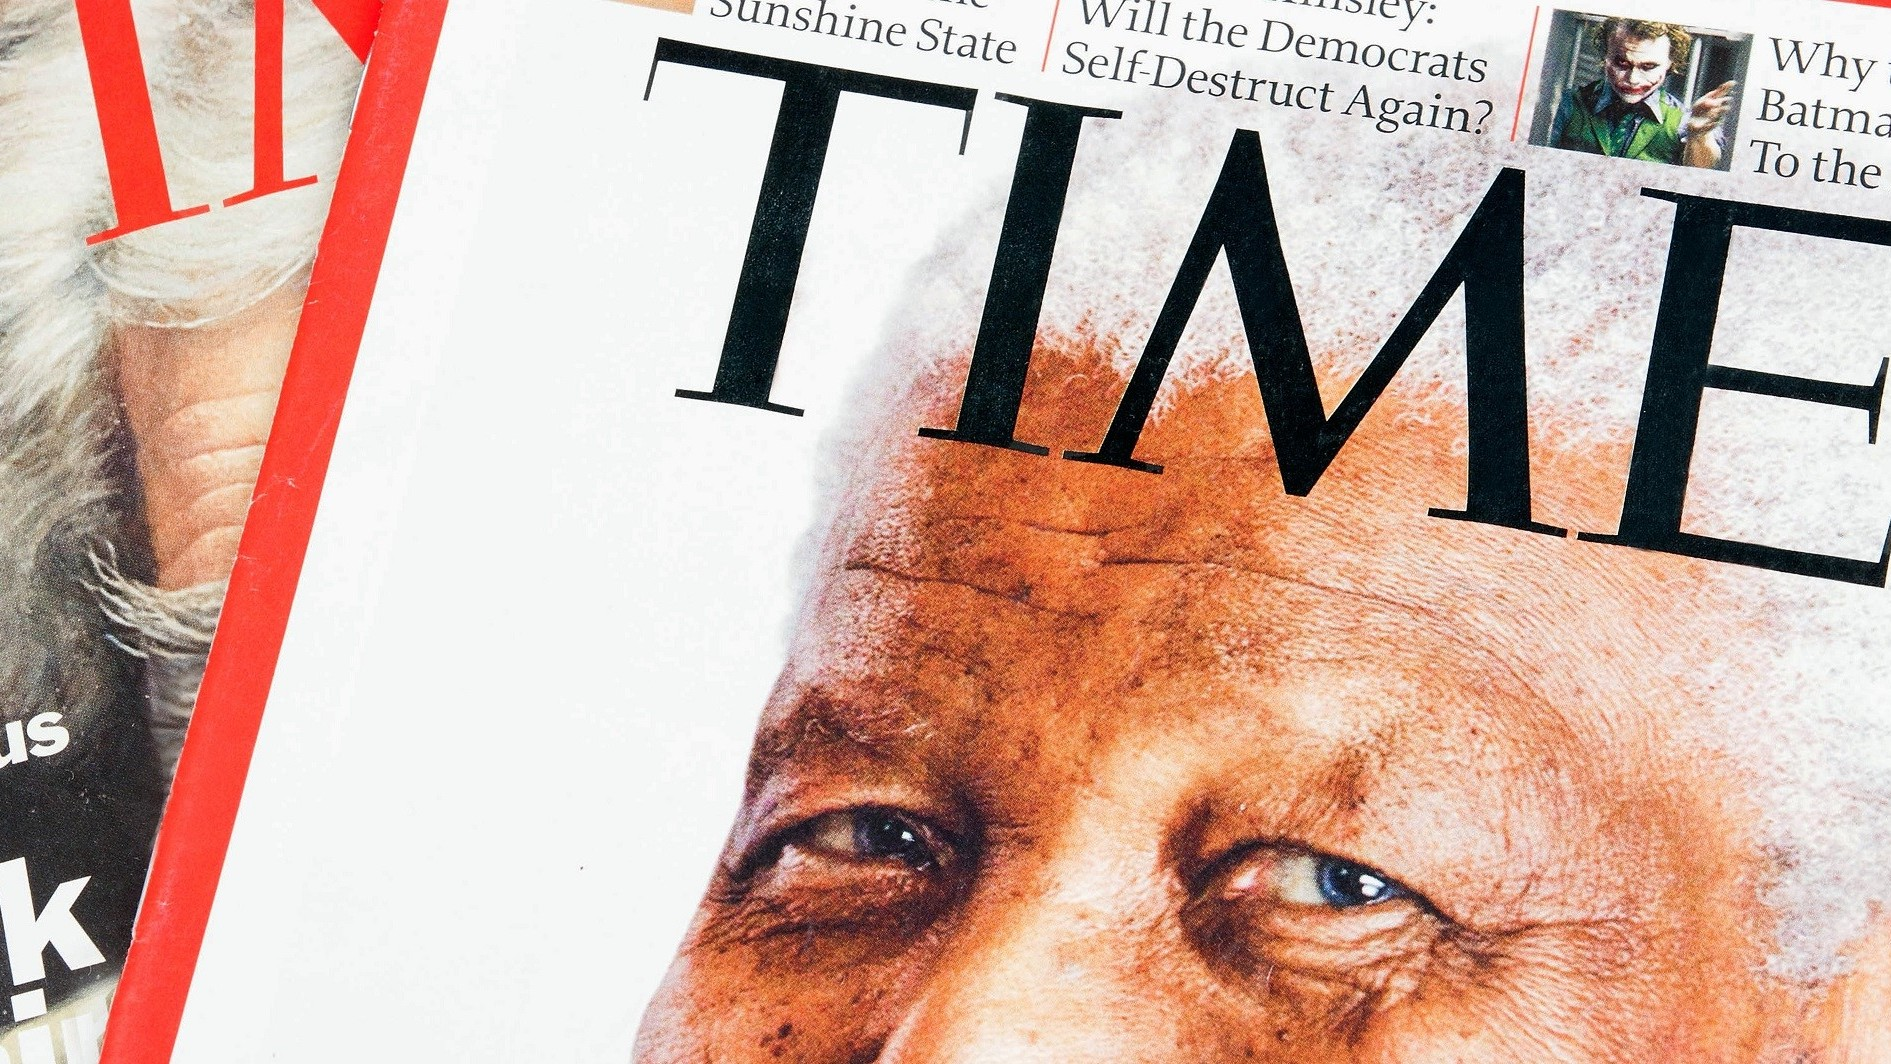 Activists Release Nearly 100 Years of TIME Magazine Issues For Free